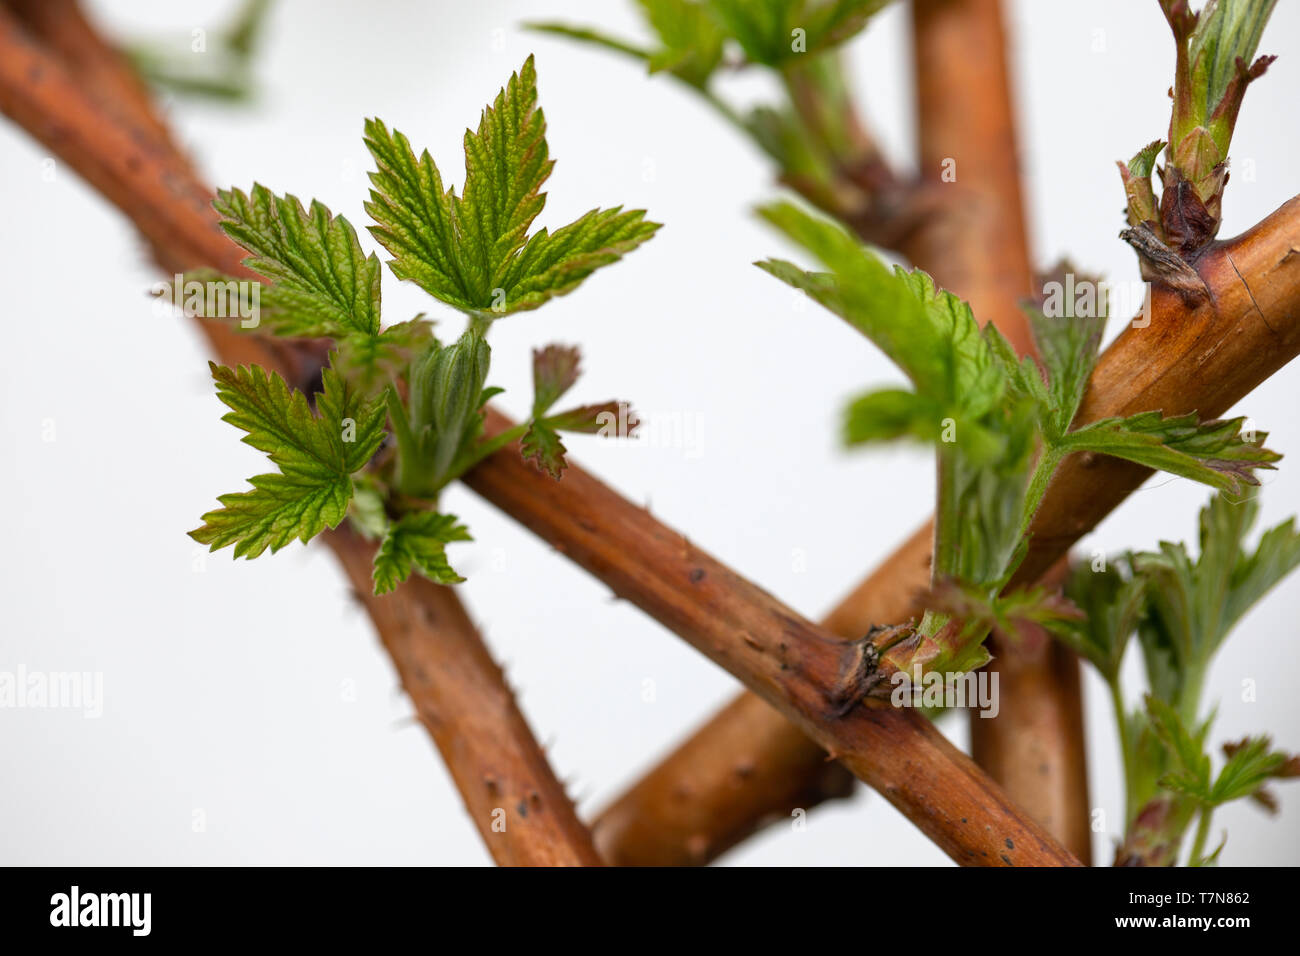 Macro close up picture of fresh growing raspberry leaves in the garden on springtime - Stock Image